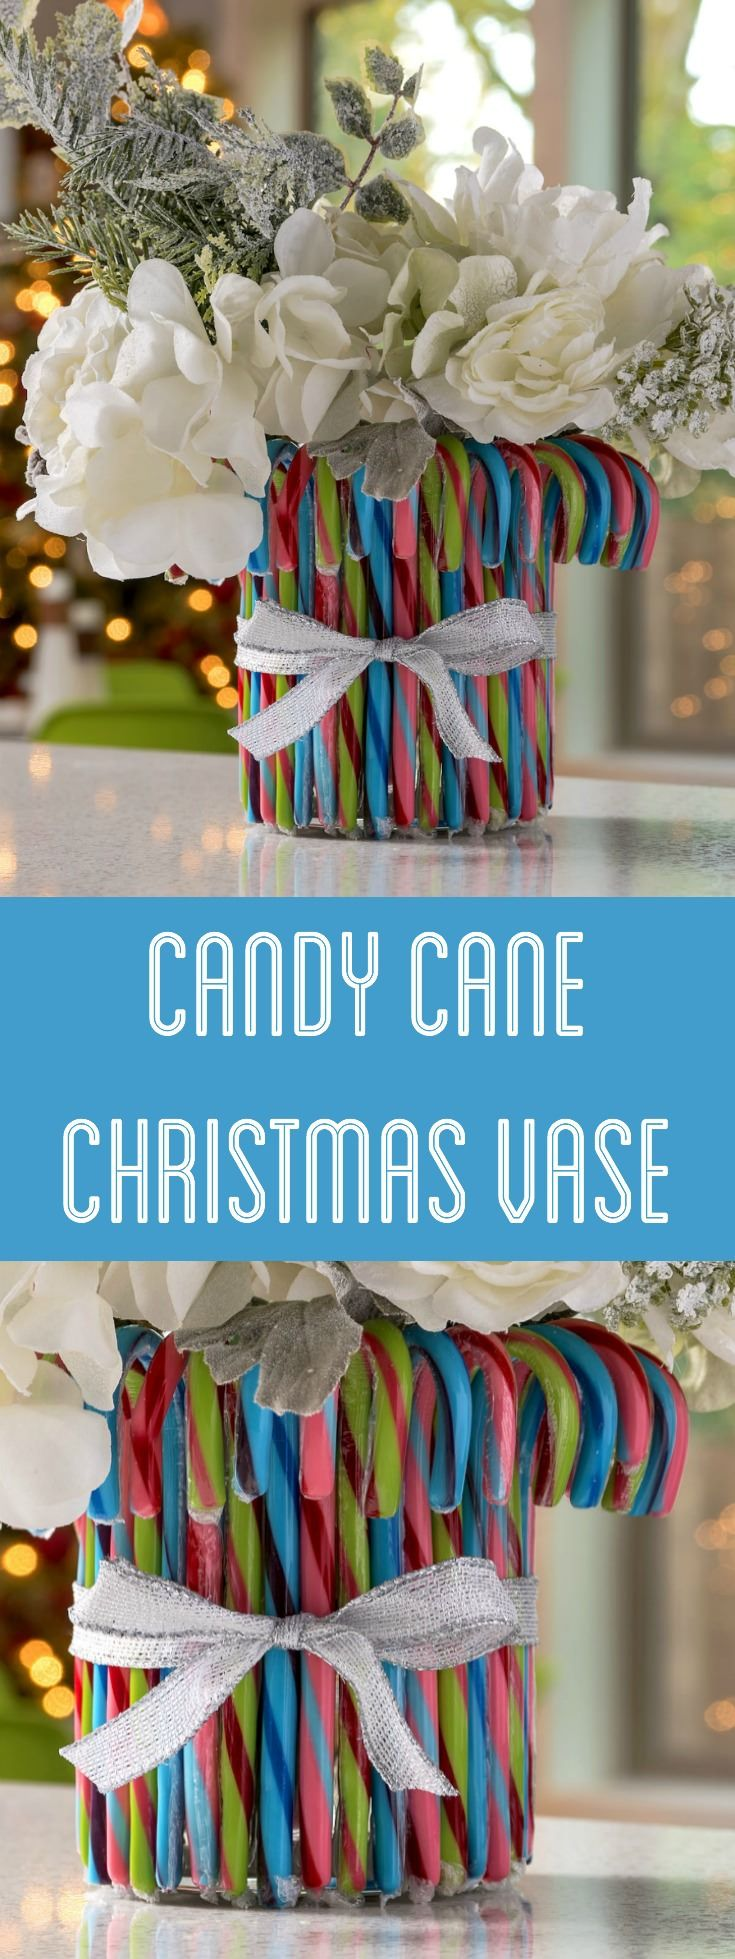 If you love candy cane decorations, this DIY Christmas vase is going to be right up your alley! It's SO easy to make using dollar store supplies and only takes a few supplies. Fun for kids to help with! via @diy_candy